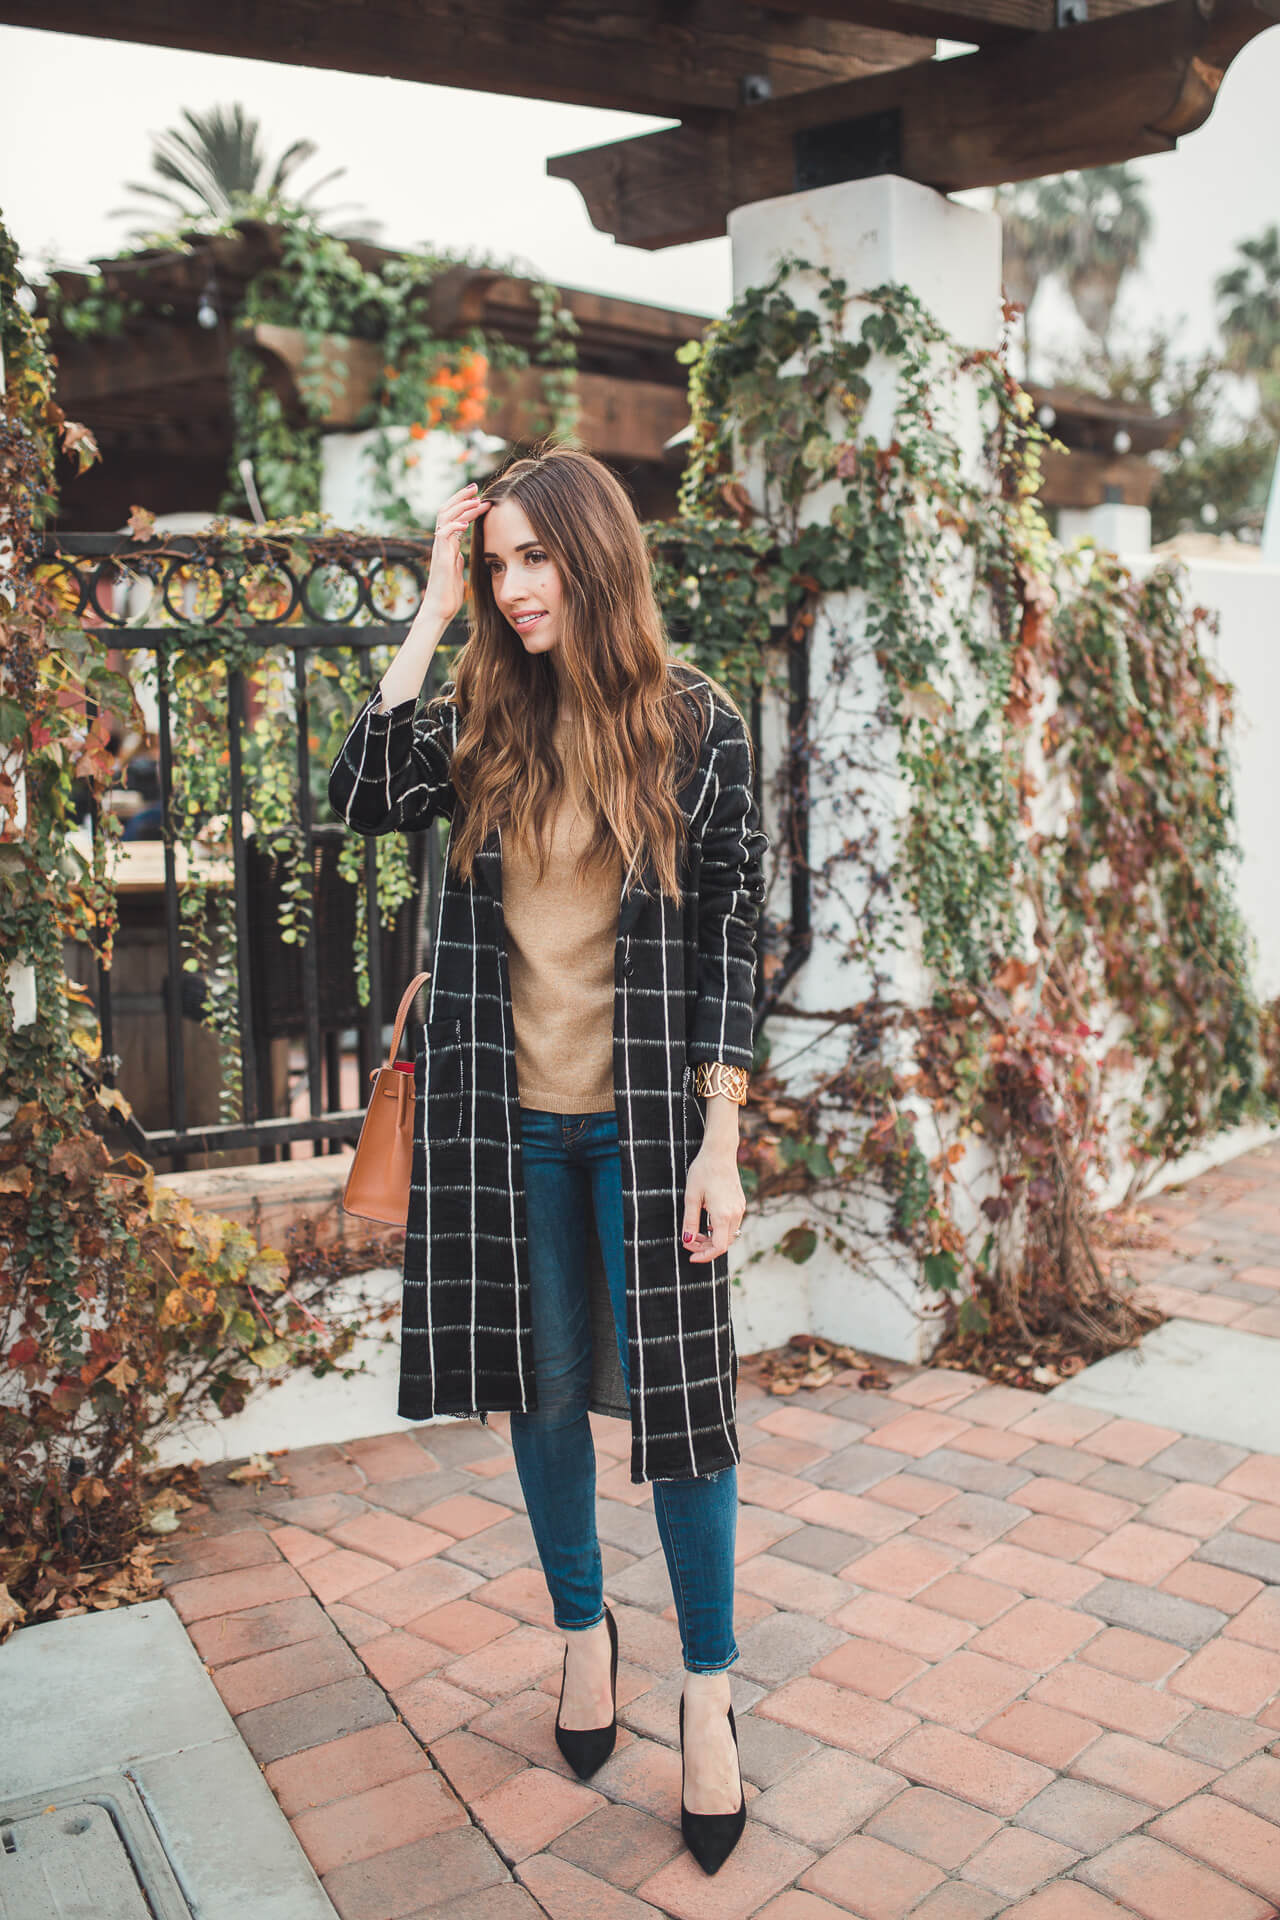 dressing up a casual sweater and jeans outfit - M Loves M @marmar